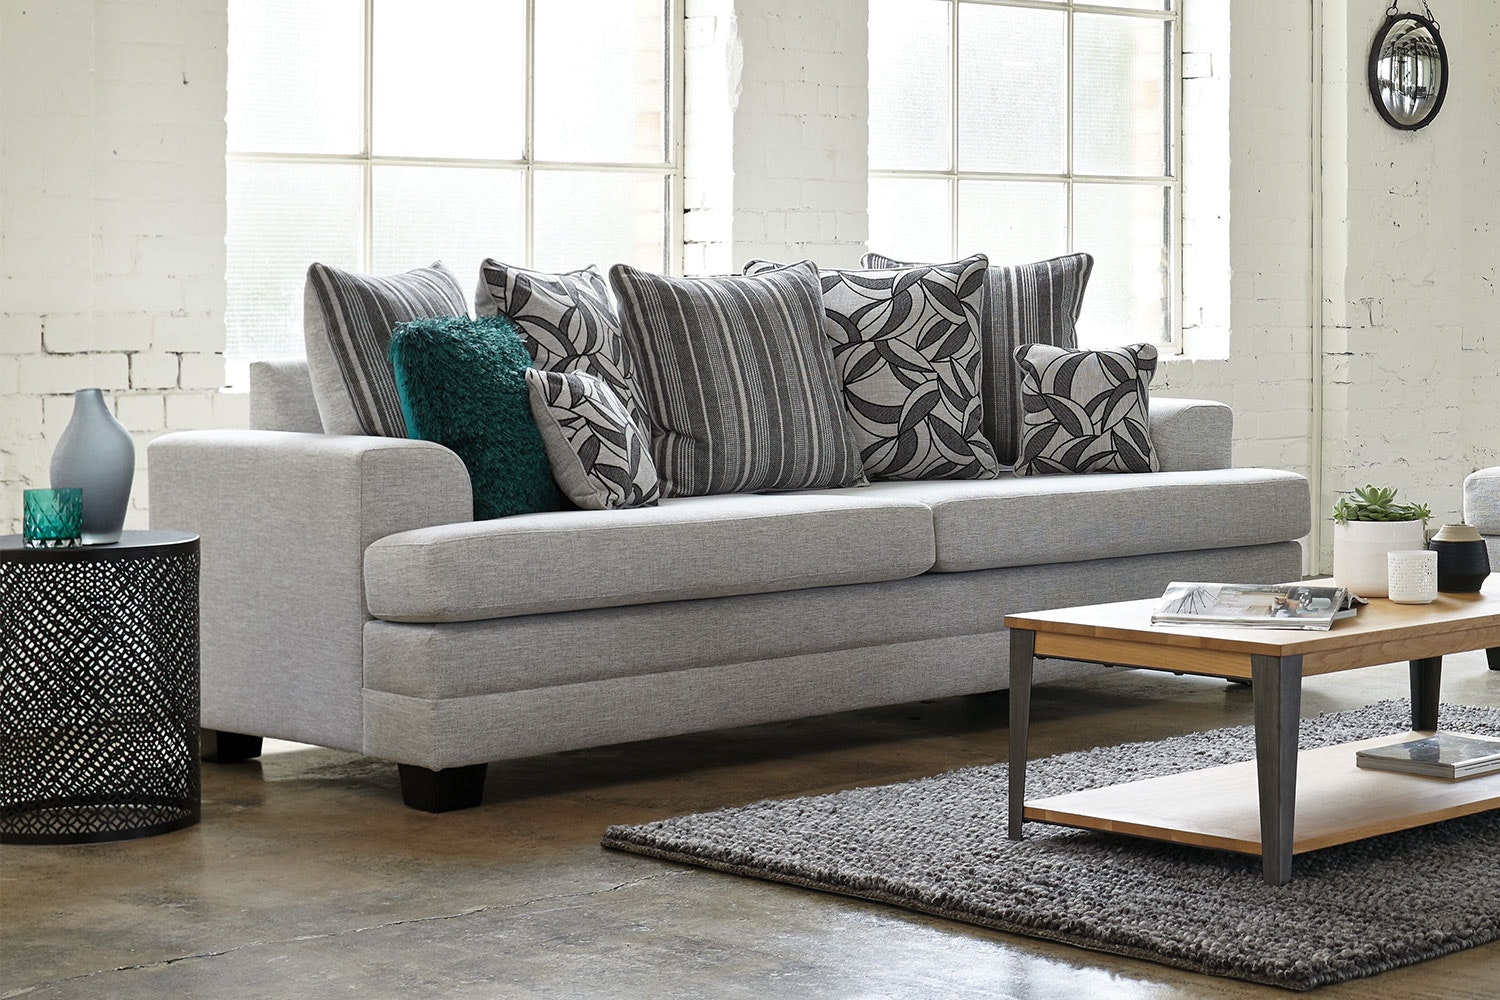 Evolution 2 Piece Fabric Lounge Suite by White Rose Furniture - 3-seater sofa